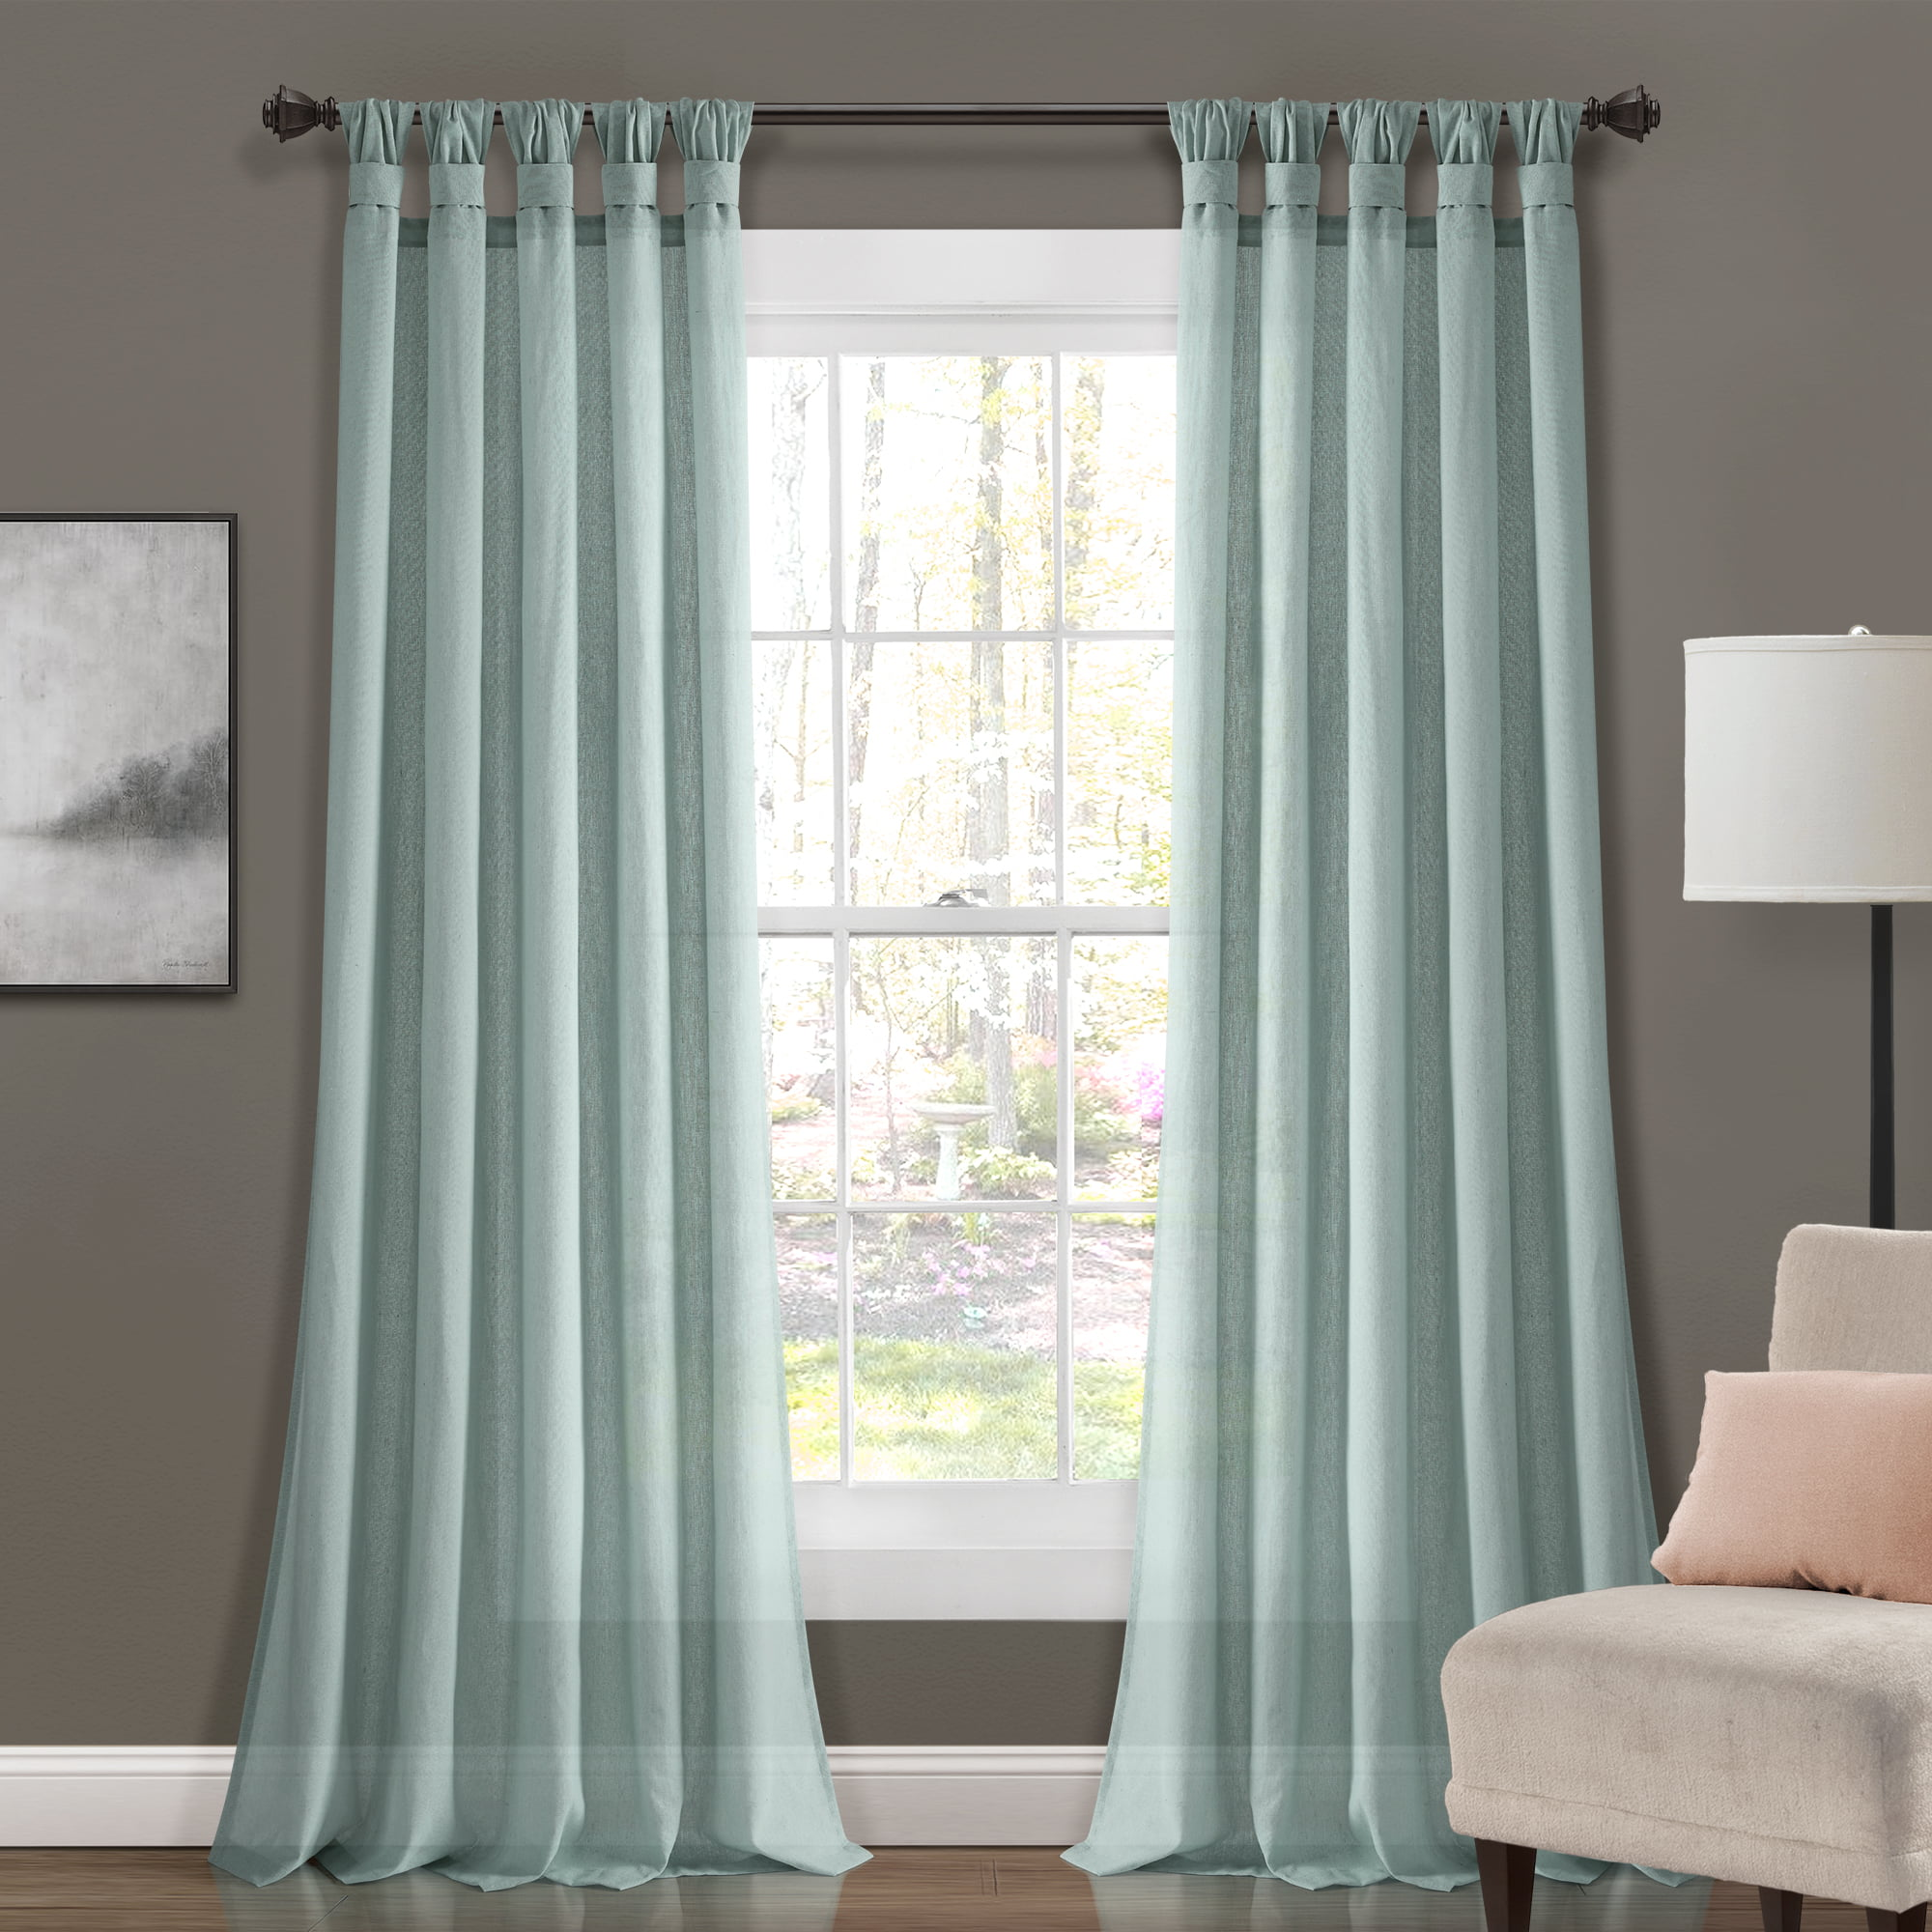 """Lush Decor Burlap Knotted Tab Top Knotted Tab Top 84"""" x 45"""" Solid Blue Cotton Blend Knotted Tab Top Pair Window Panel"""